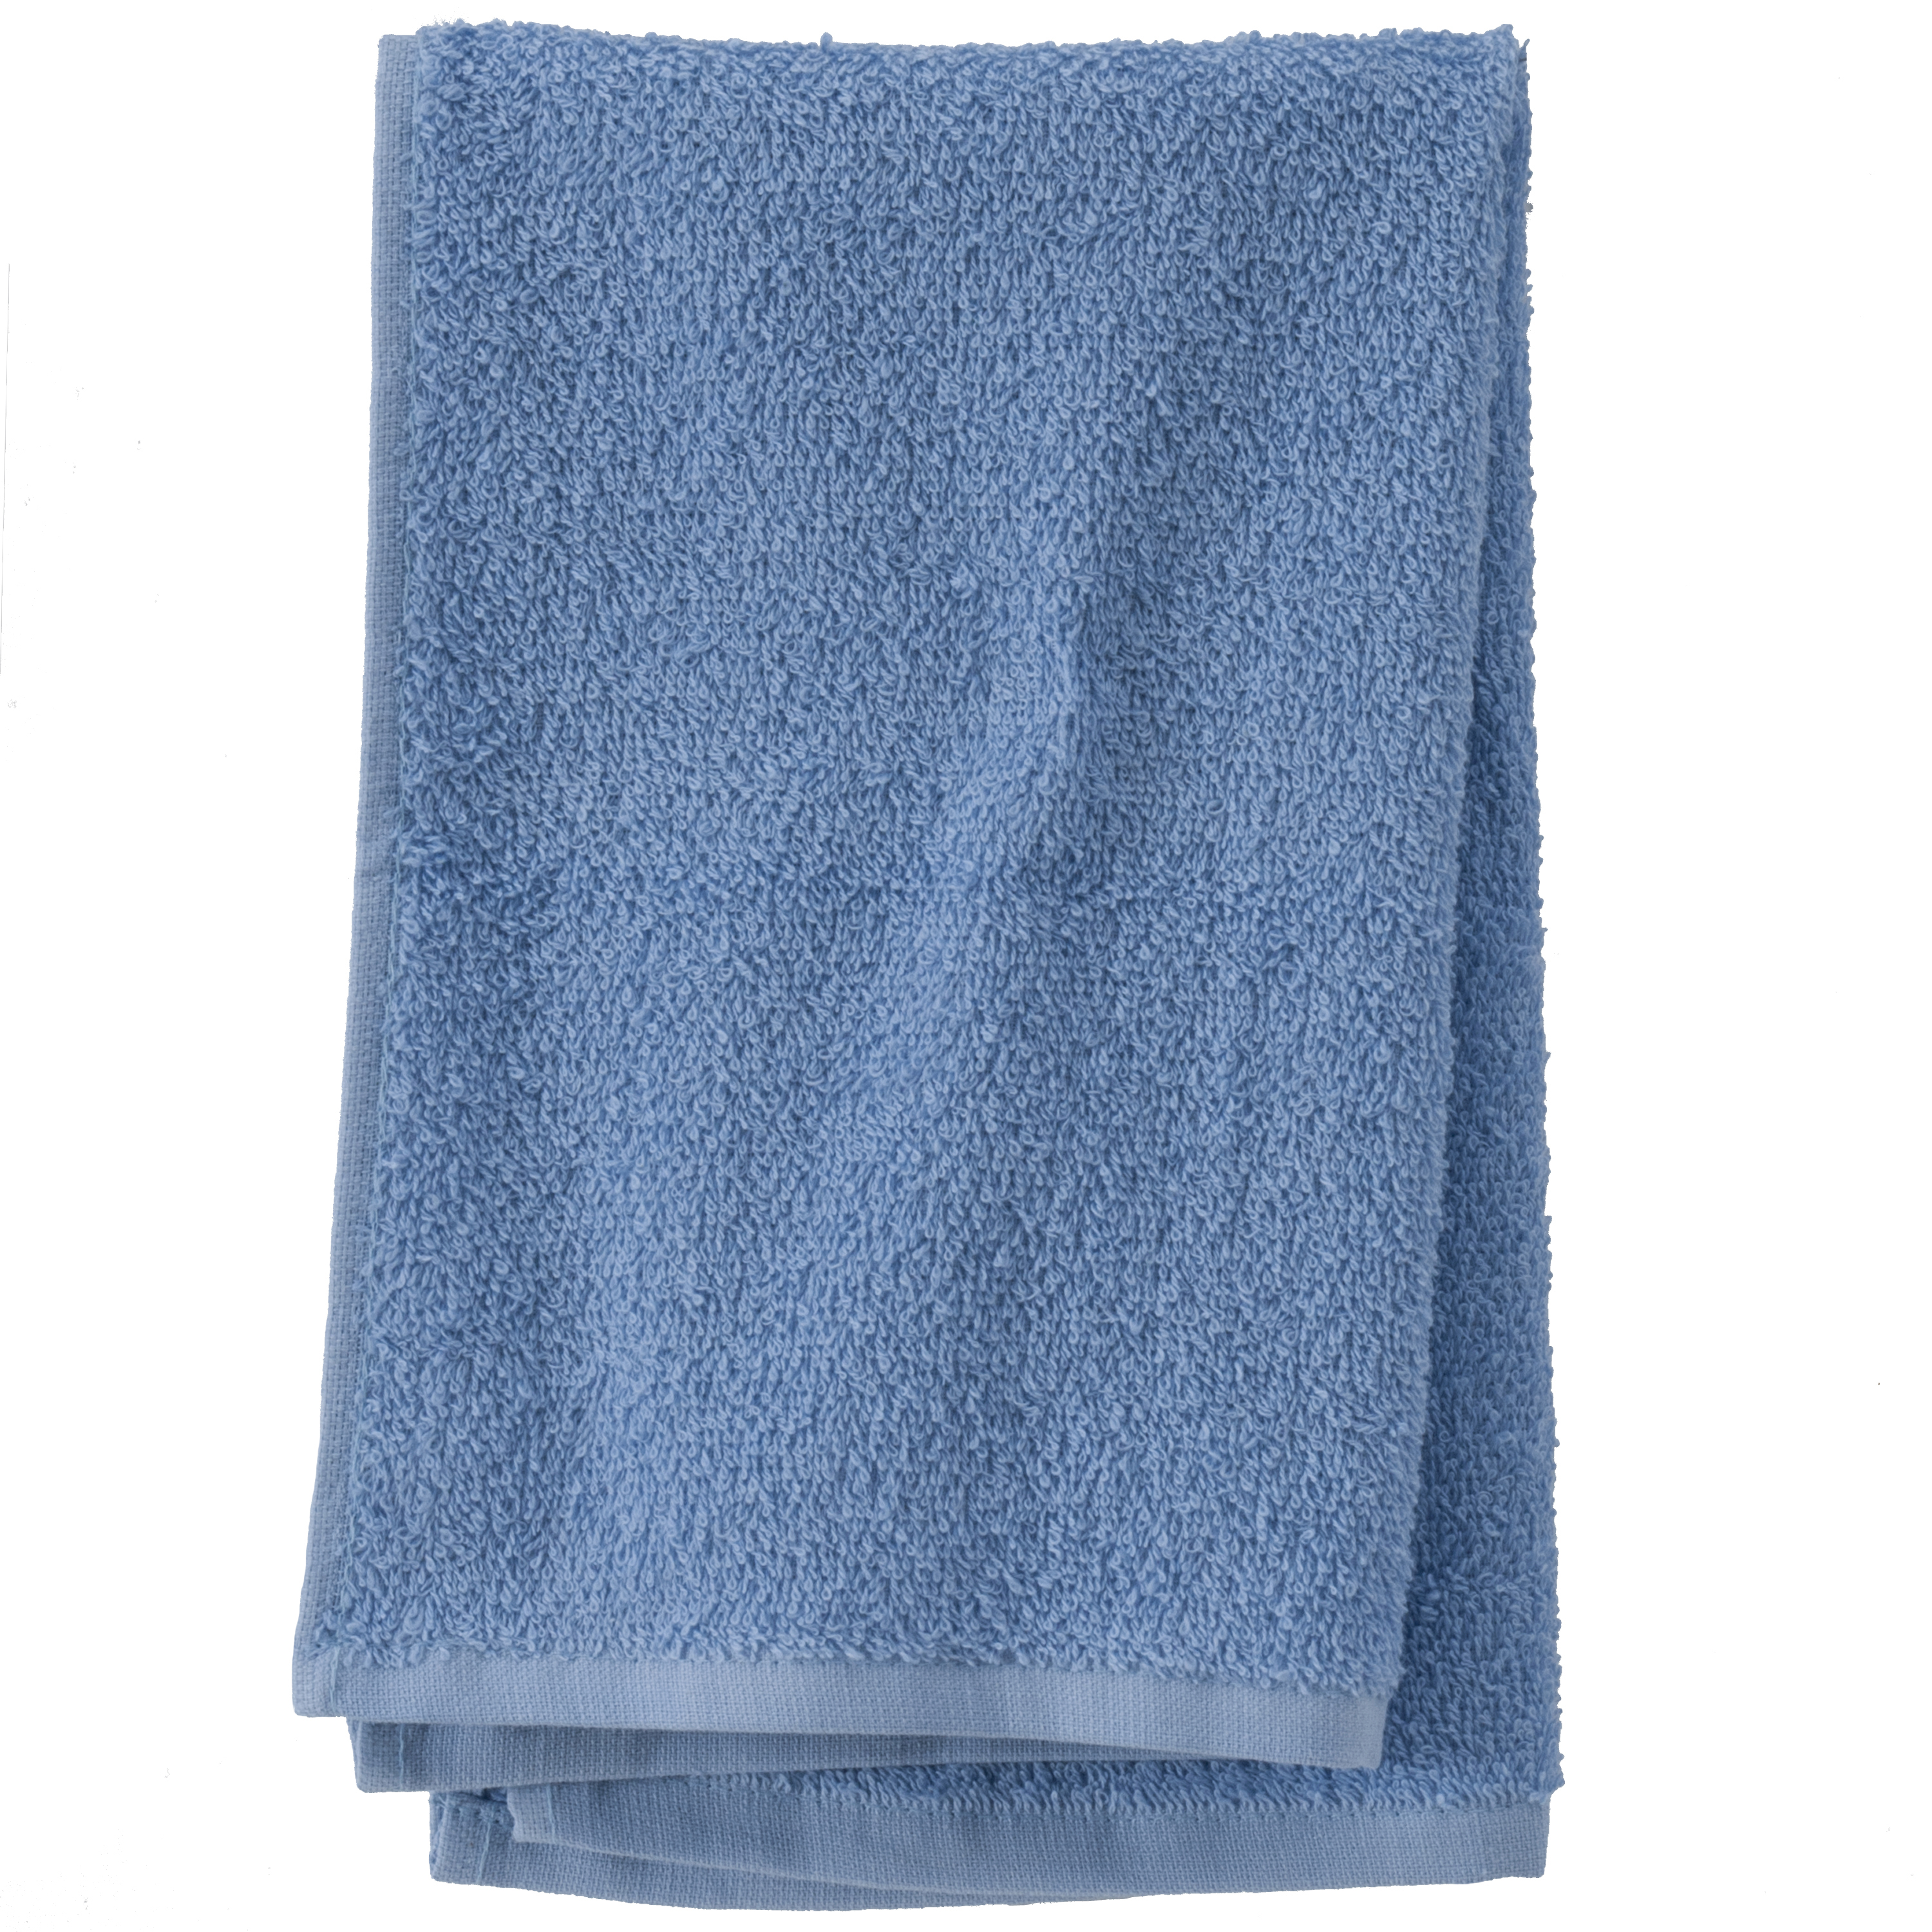 Mainstays Towel Set, 3 Piece